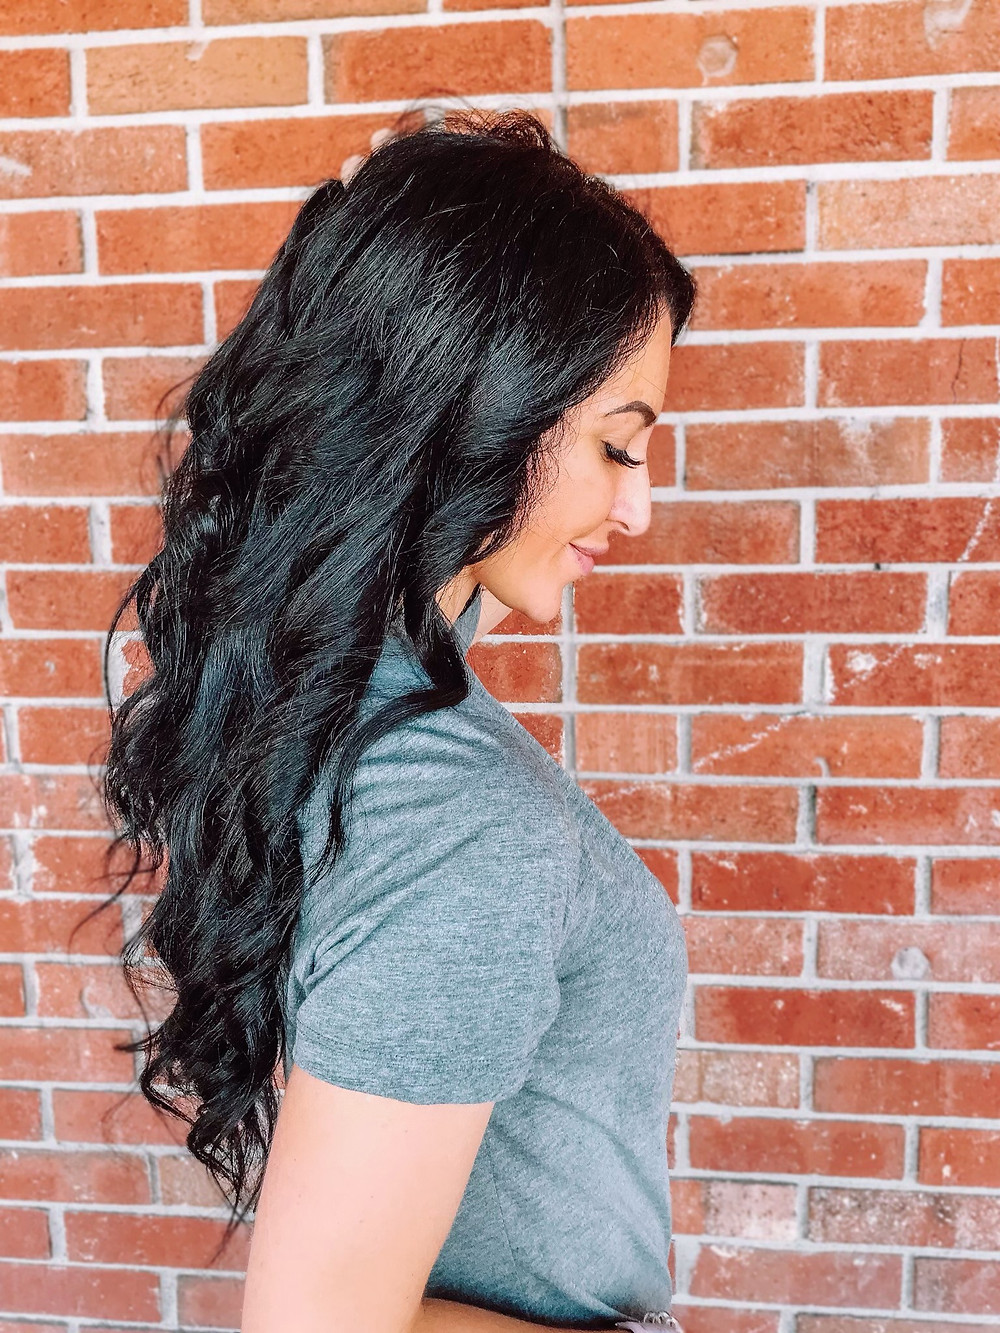 Transformations, hot head extensions, tape in extensions, hair loss, hair restoration, Indianapolis blogger, indy blogger, indy spa, indy salon, boutique clothing, the girls in grey